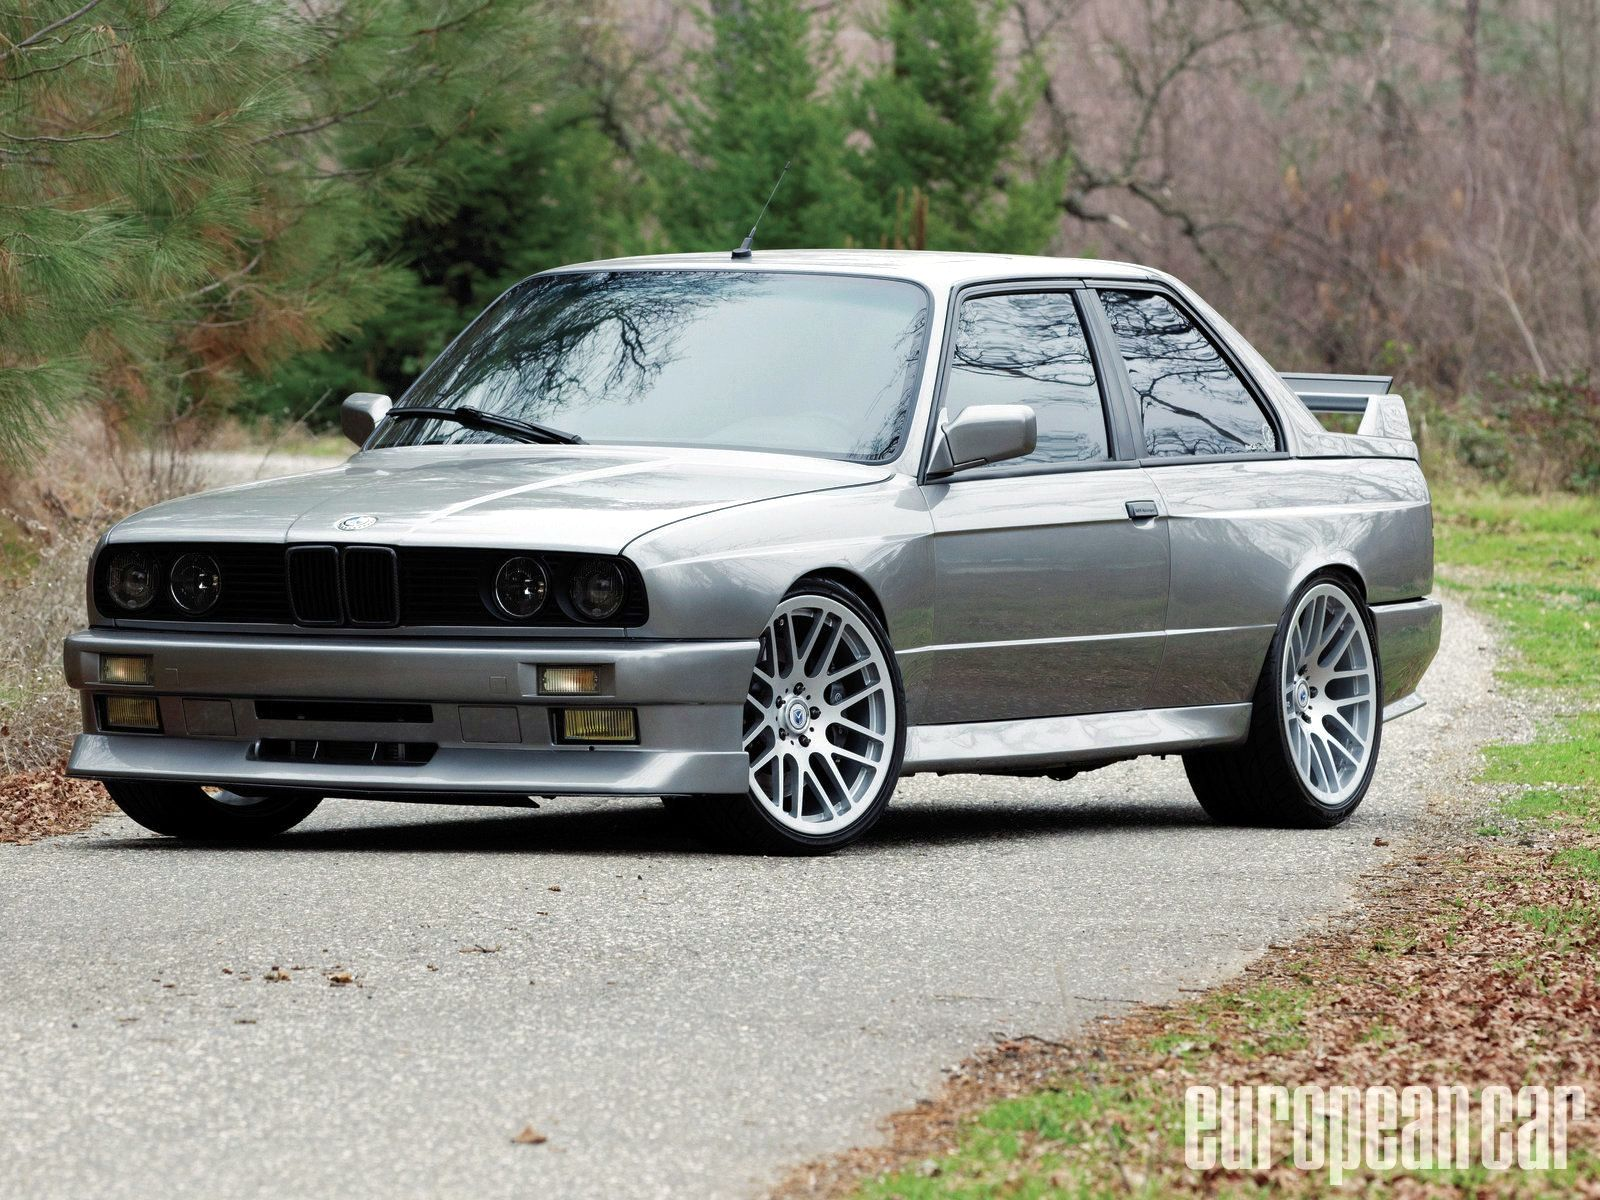 1988 BMW M3 Evolution II (E30)